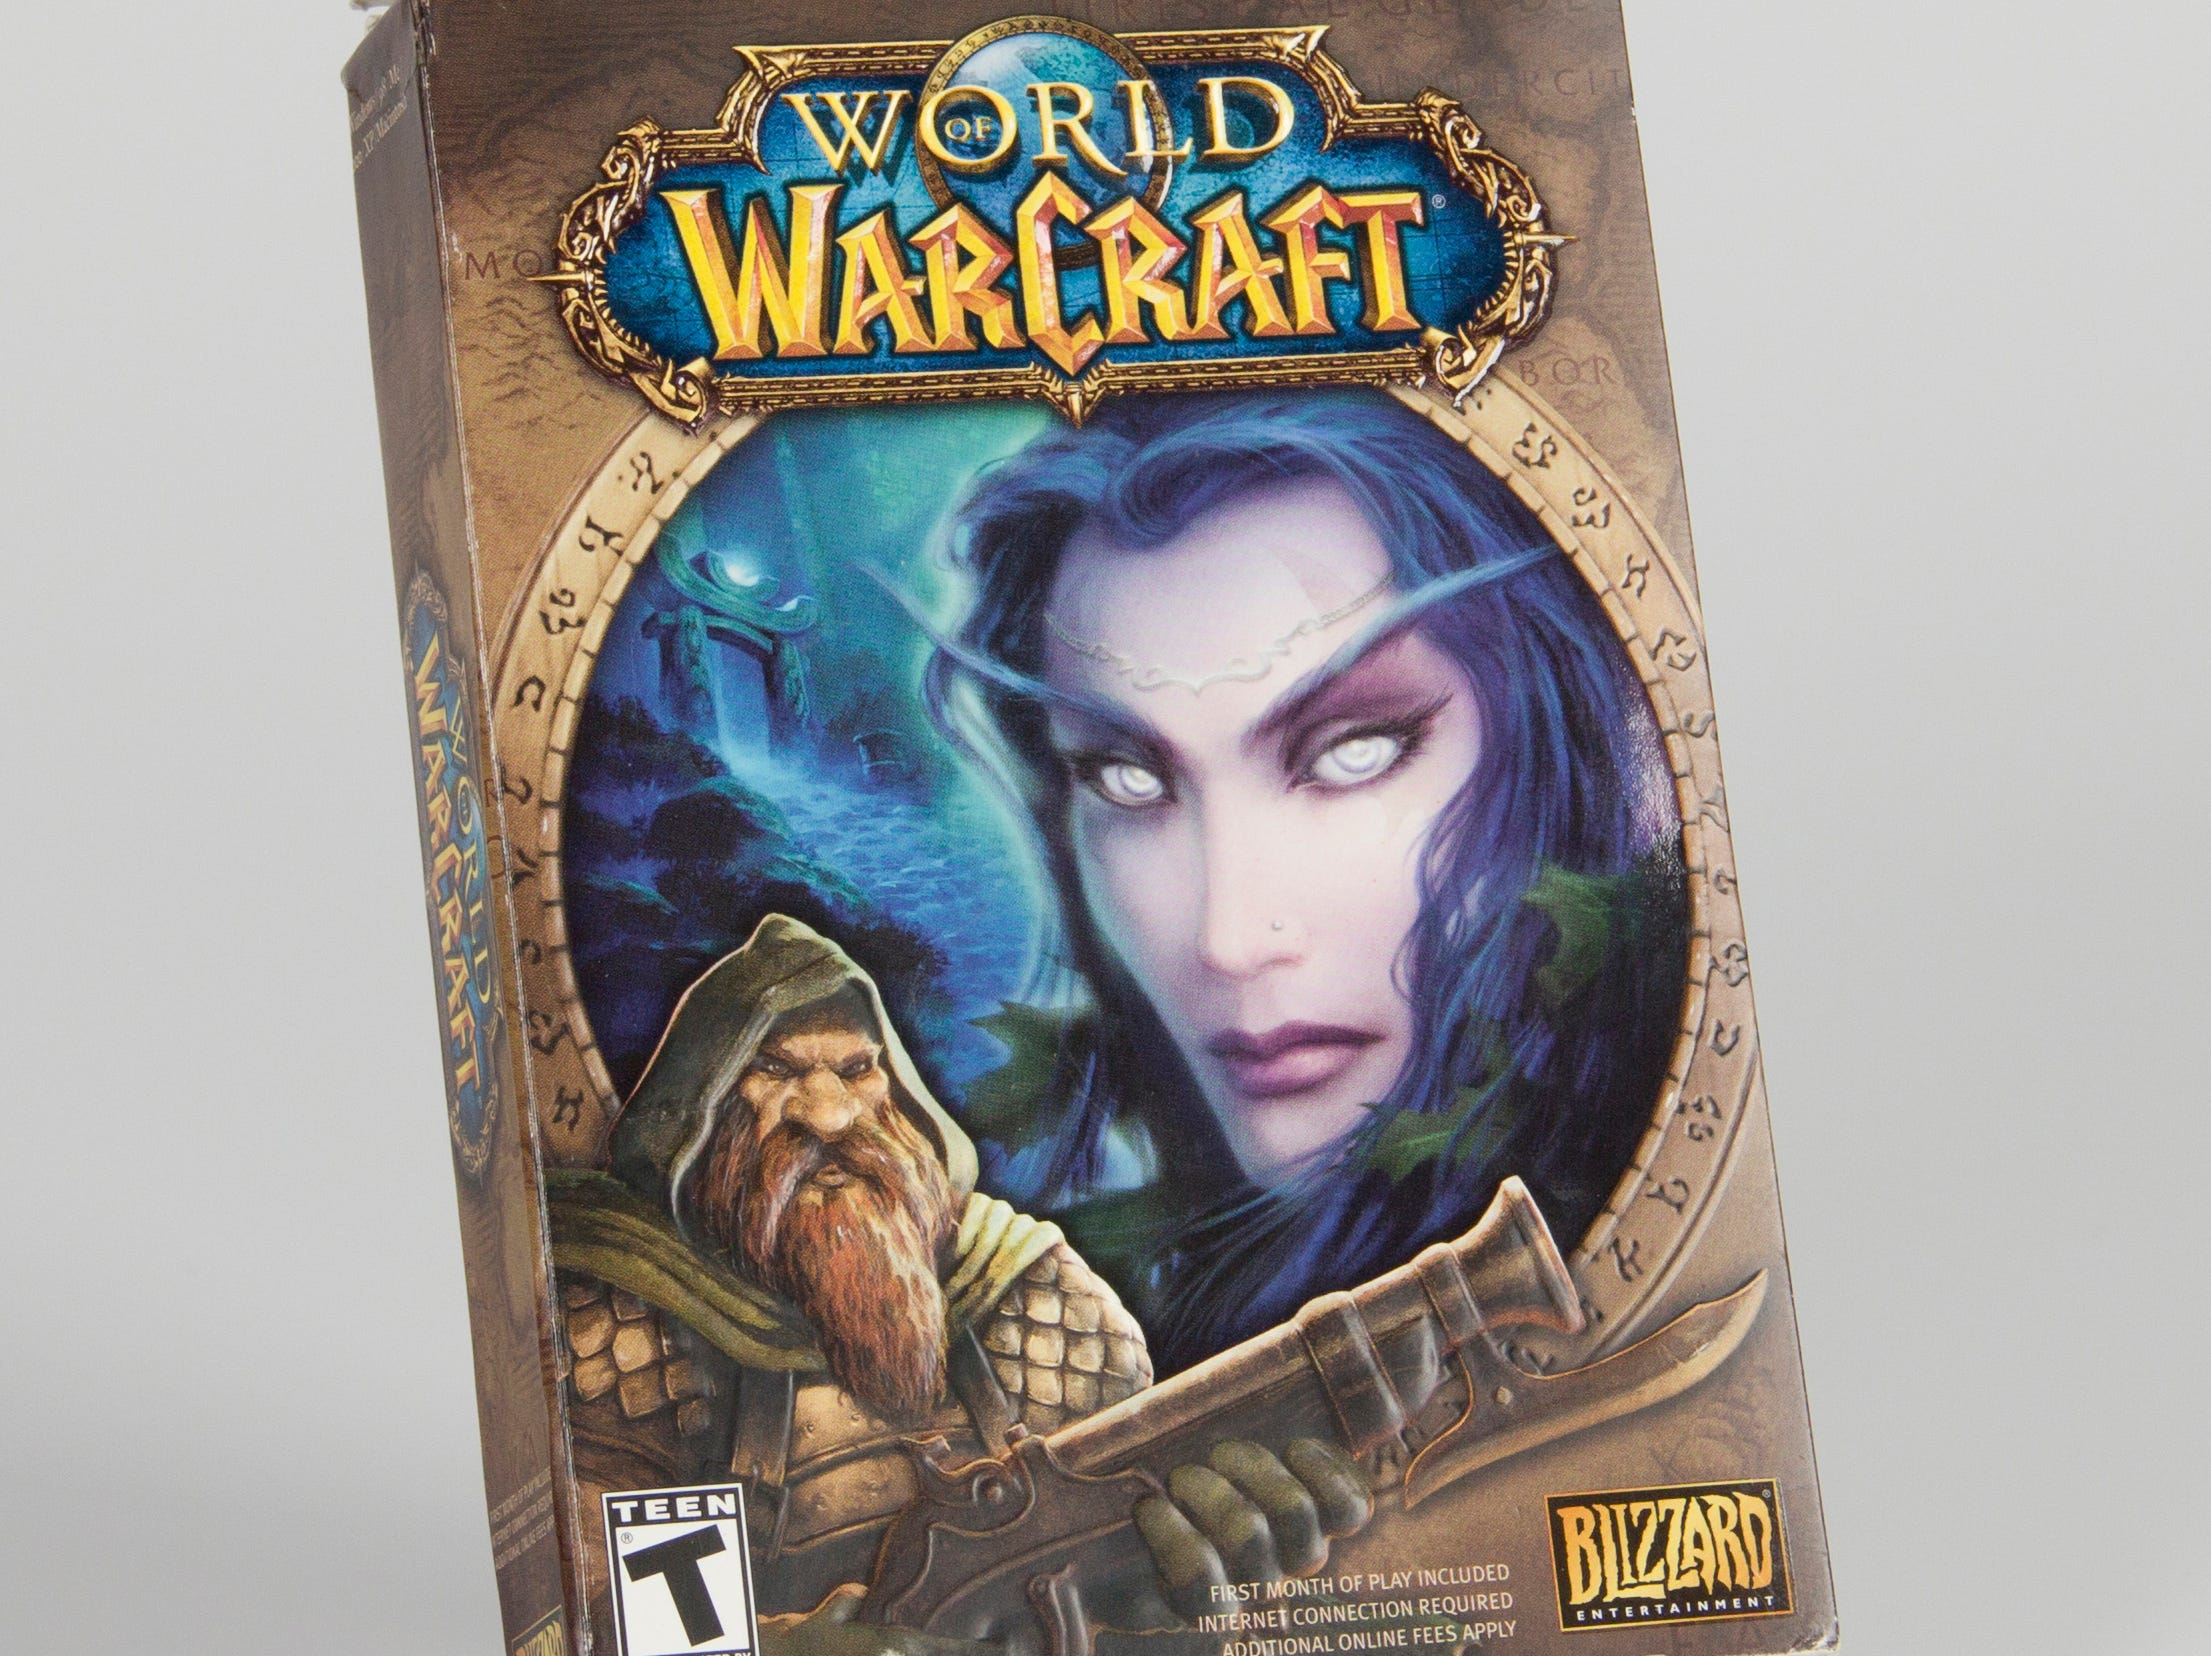 World of Warcraft was inducted into the World Video Game Hall of Fame at The Strong National Museum of Play in  Rochester, New York in 2015.